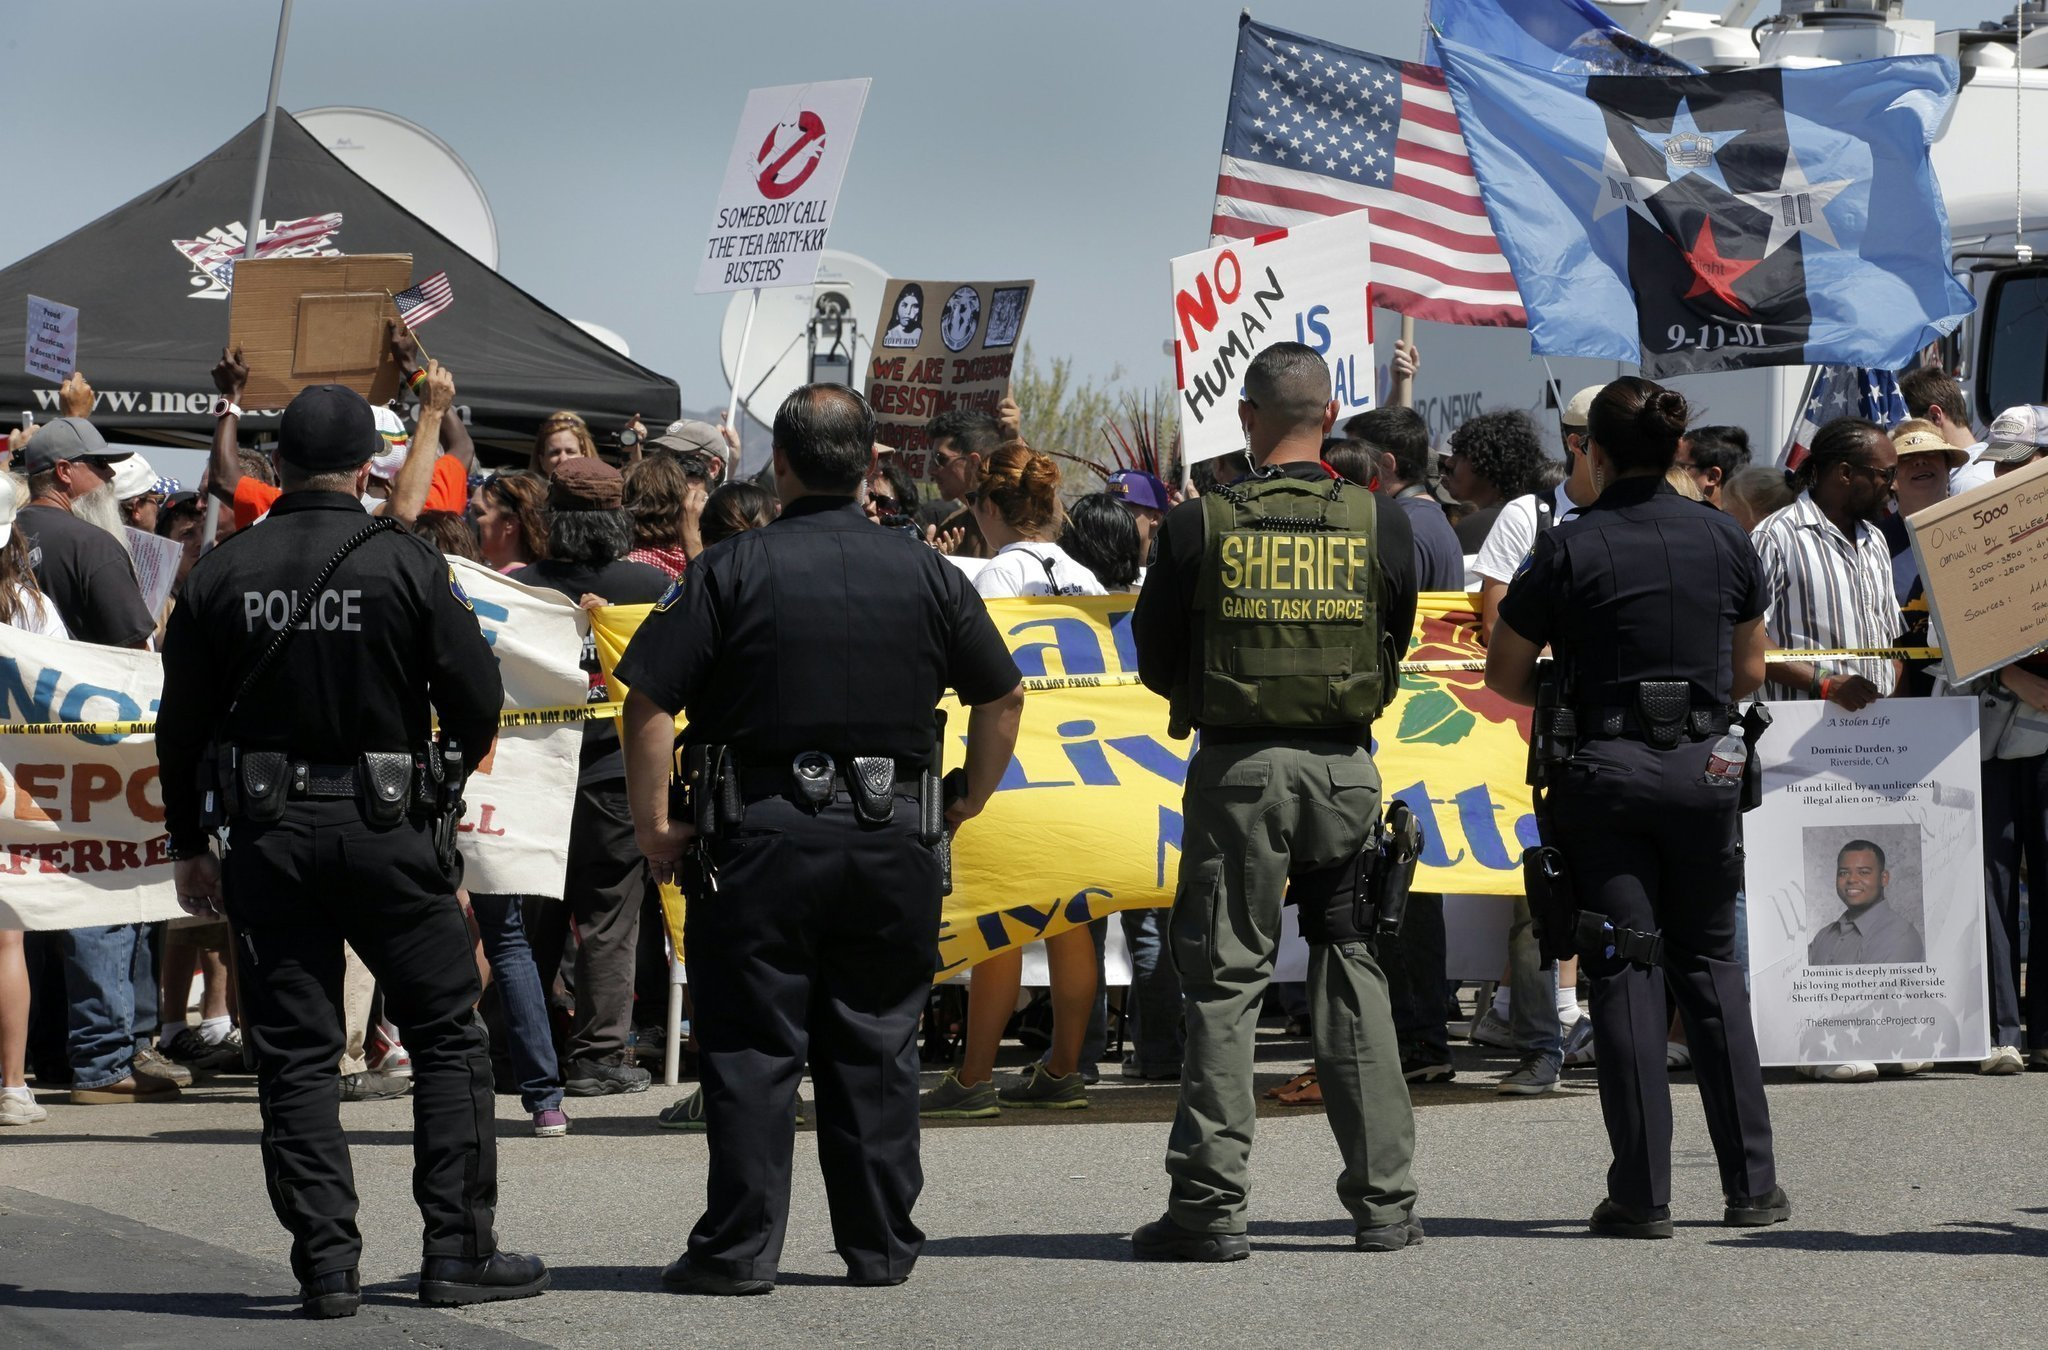 Murrieta Immigrant Confrontation Continues On 4th Of July With No Official  Word Of Whether Another Planeload Is Coming To San Diego.